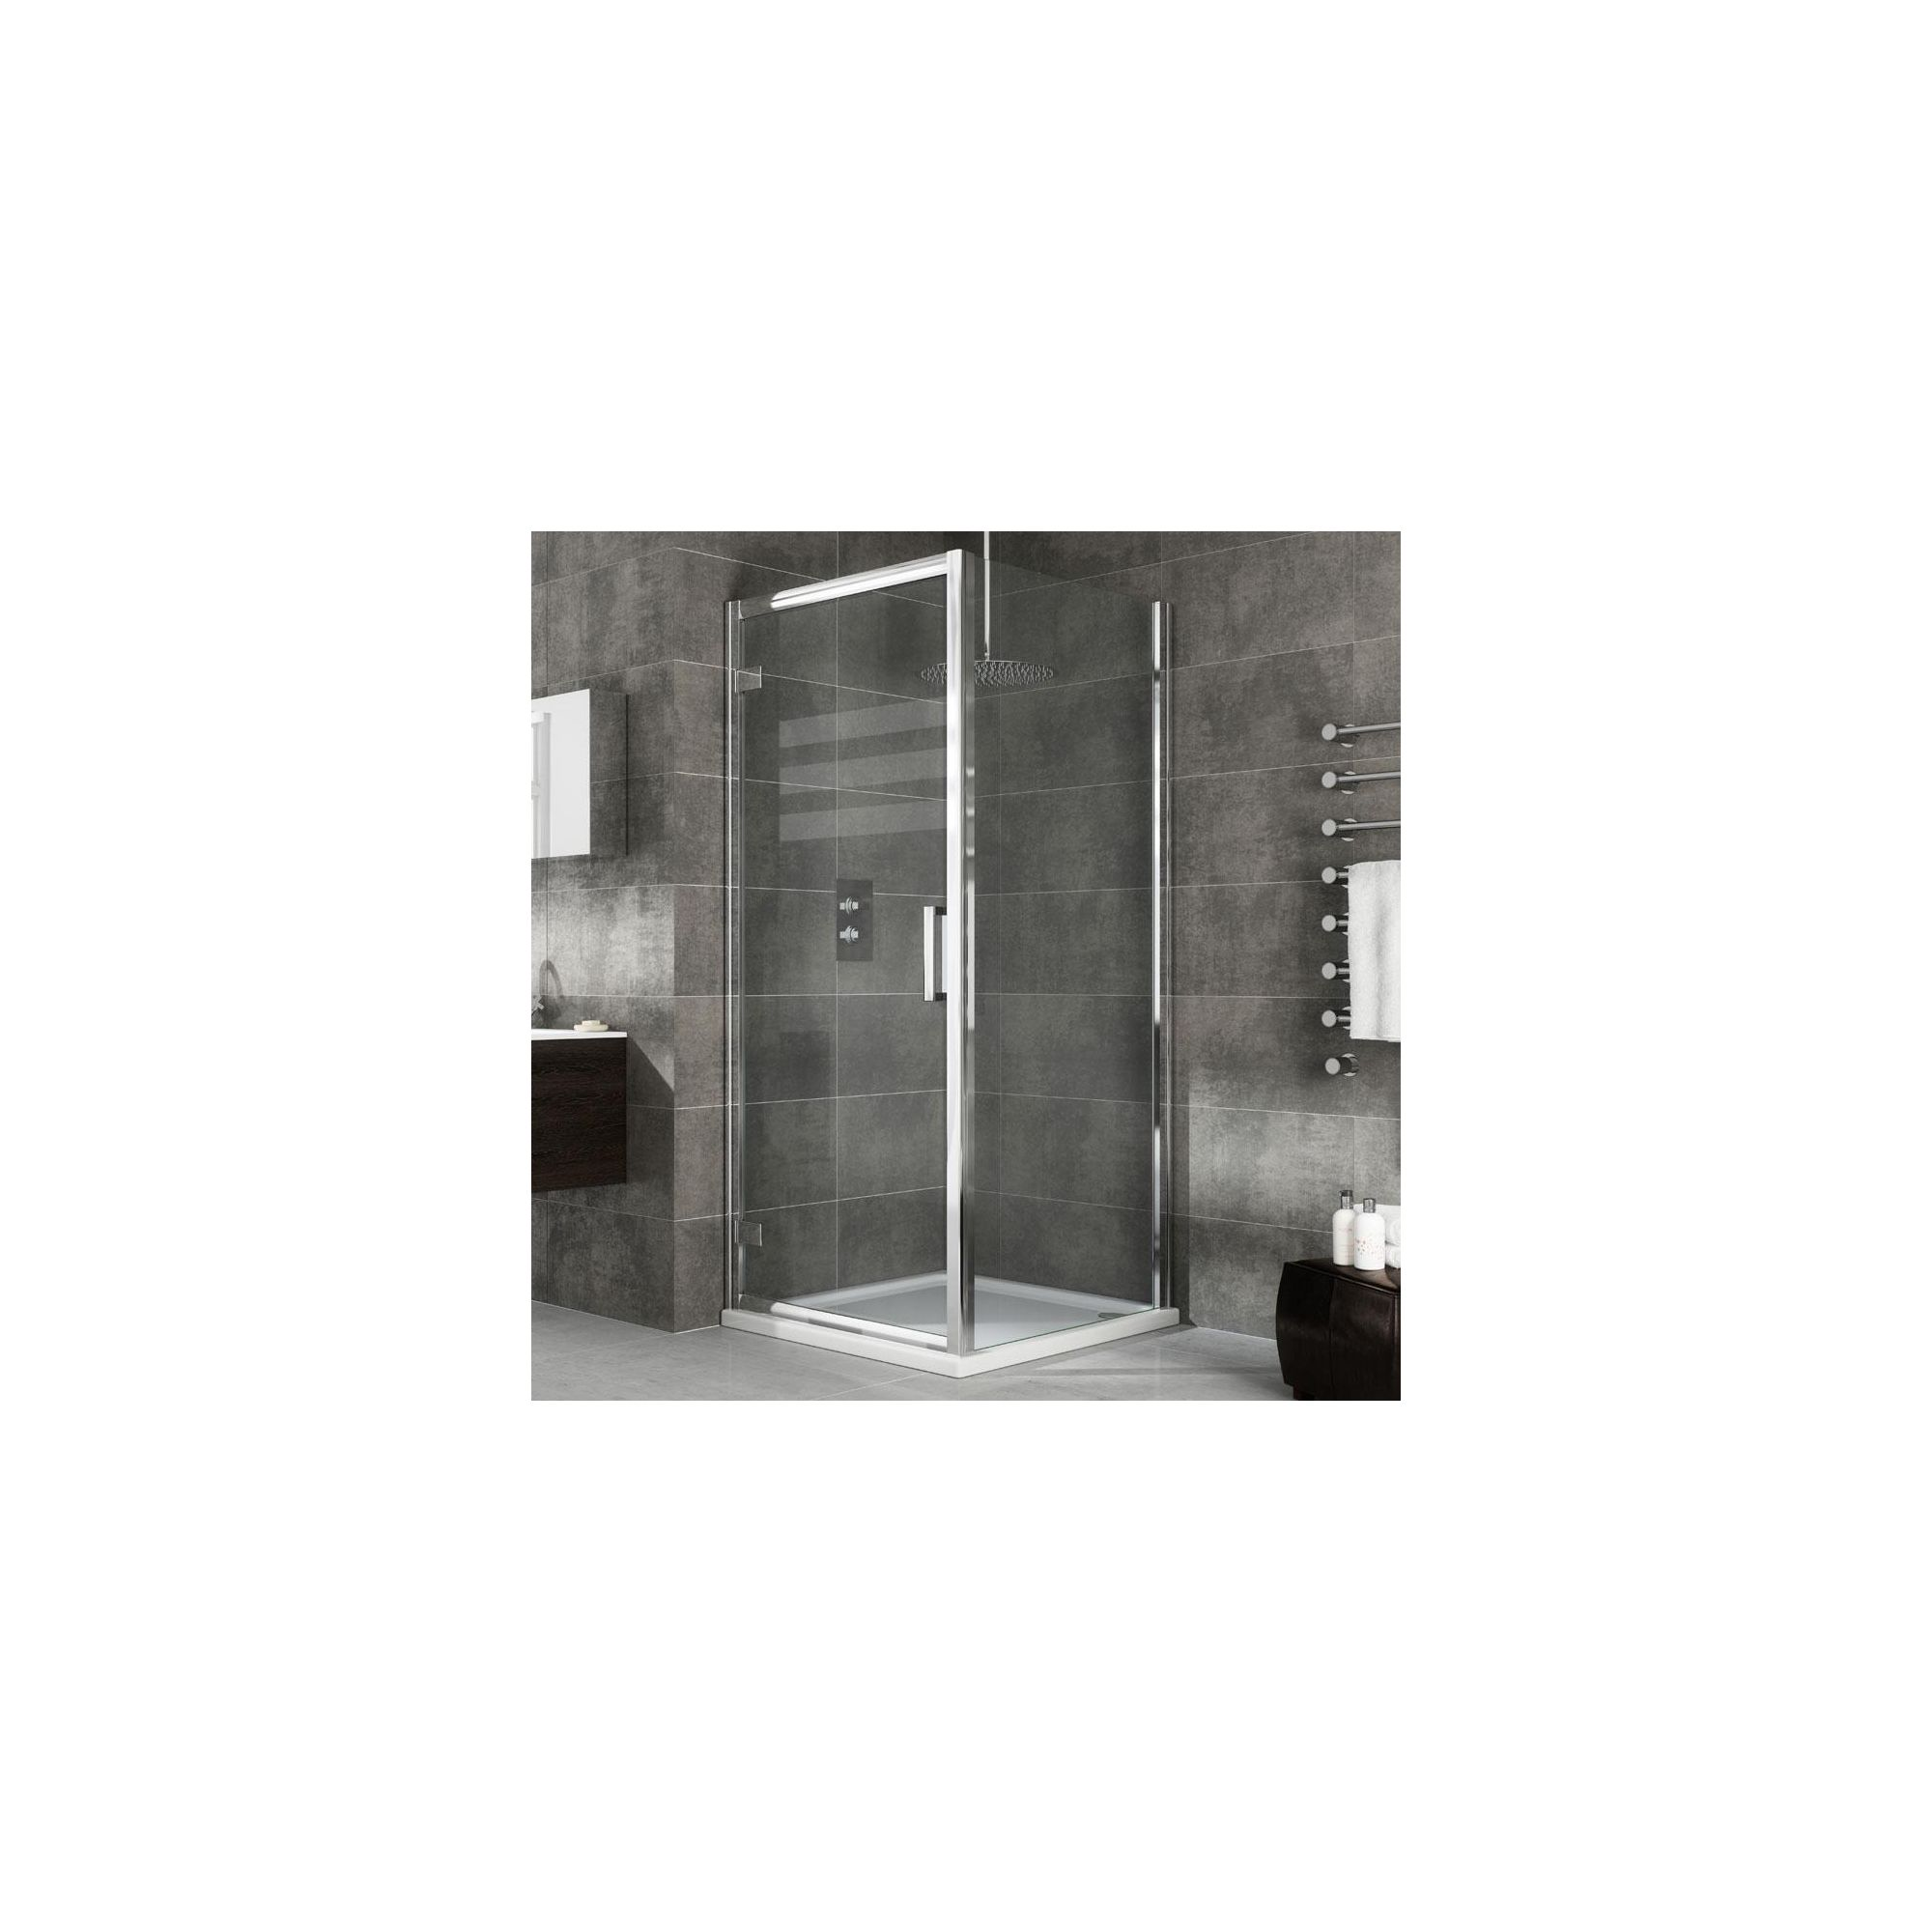 Elemis Eternity Hinged Shower Door, 760mm Wide, 8mm Glass at Tesco Direct